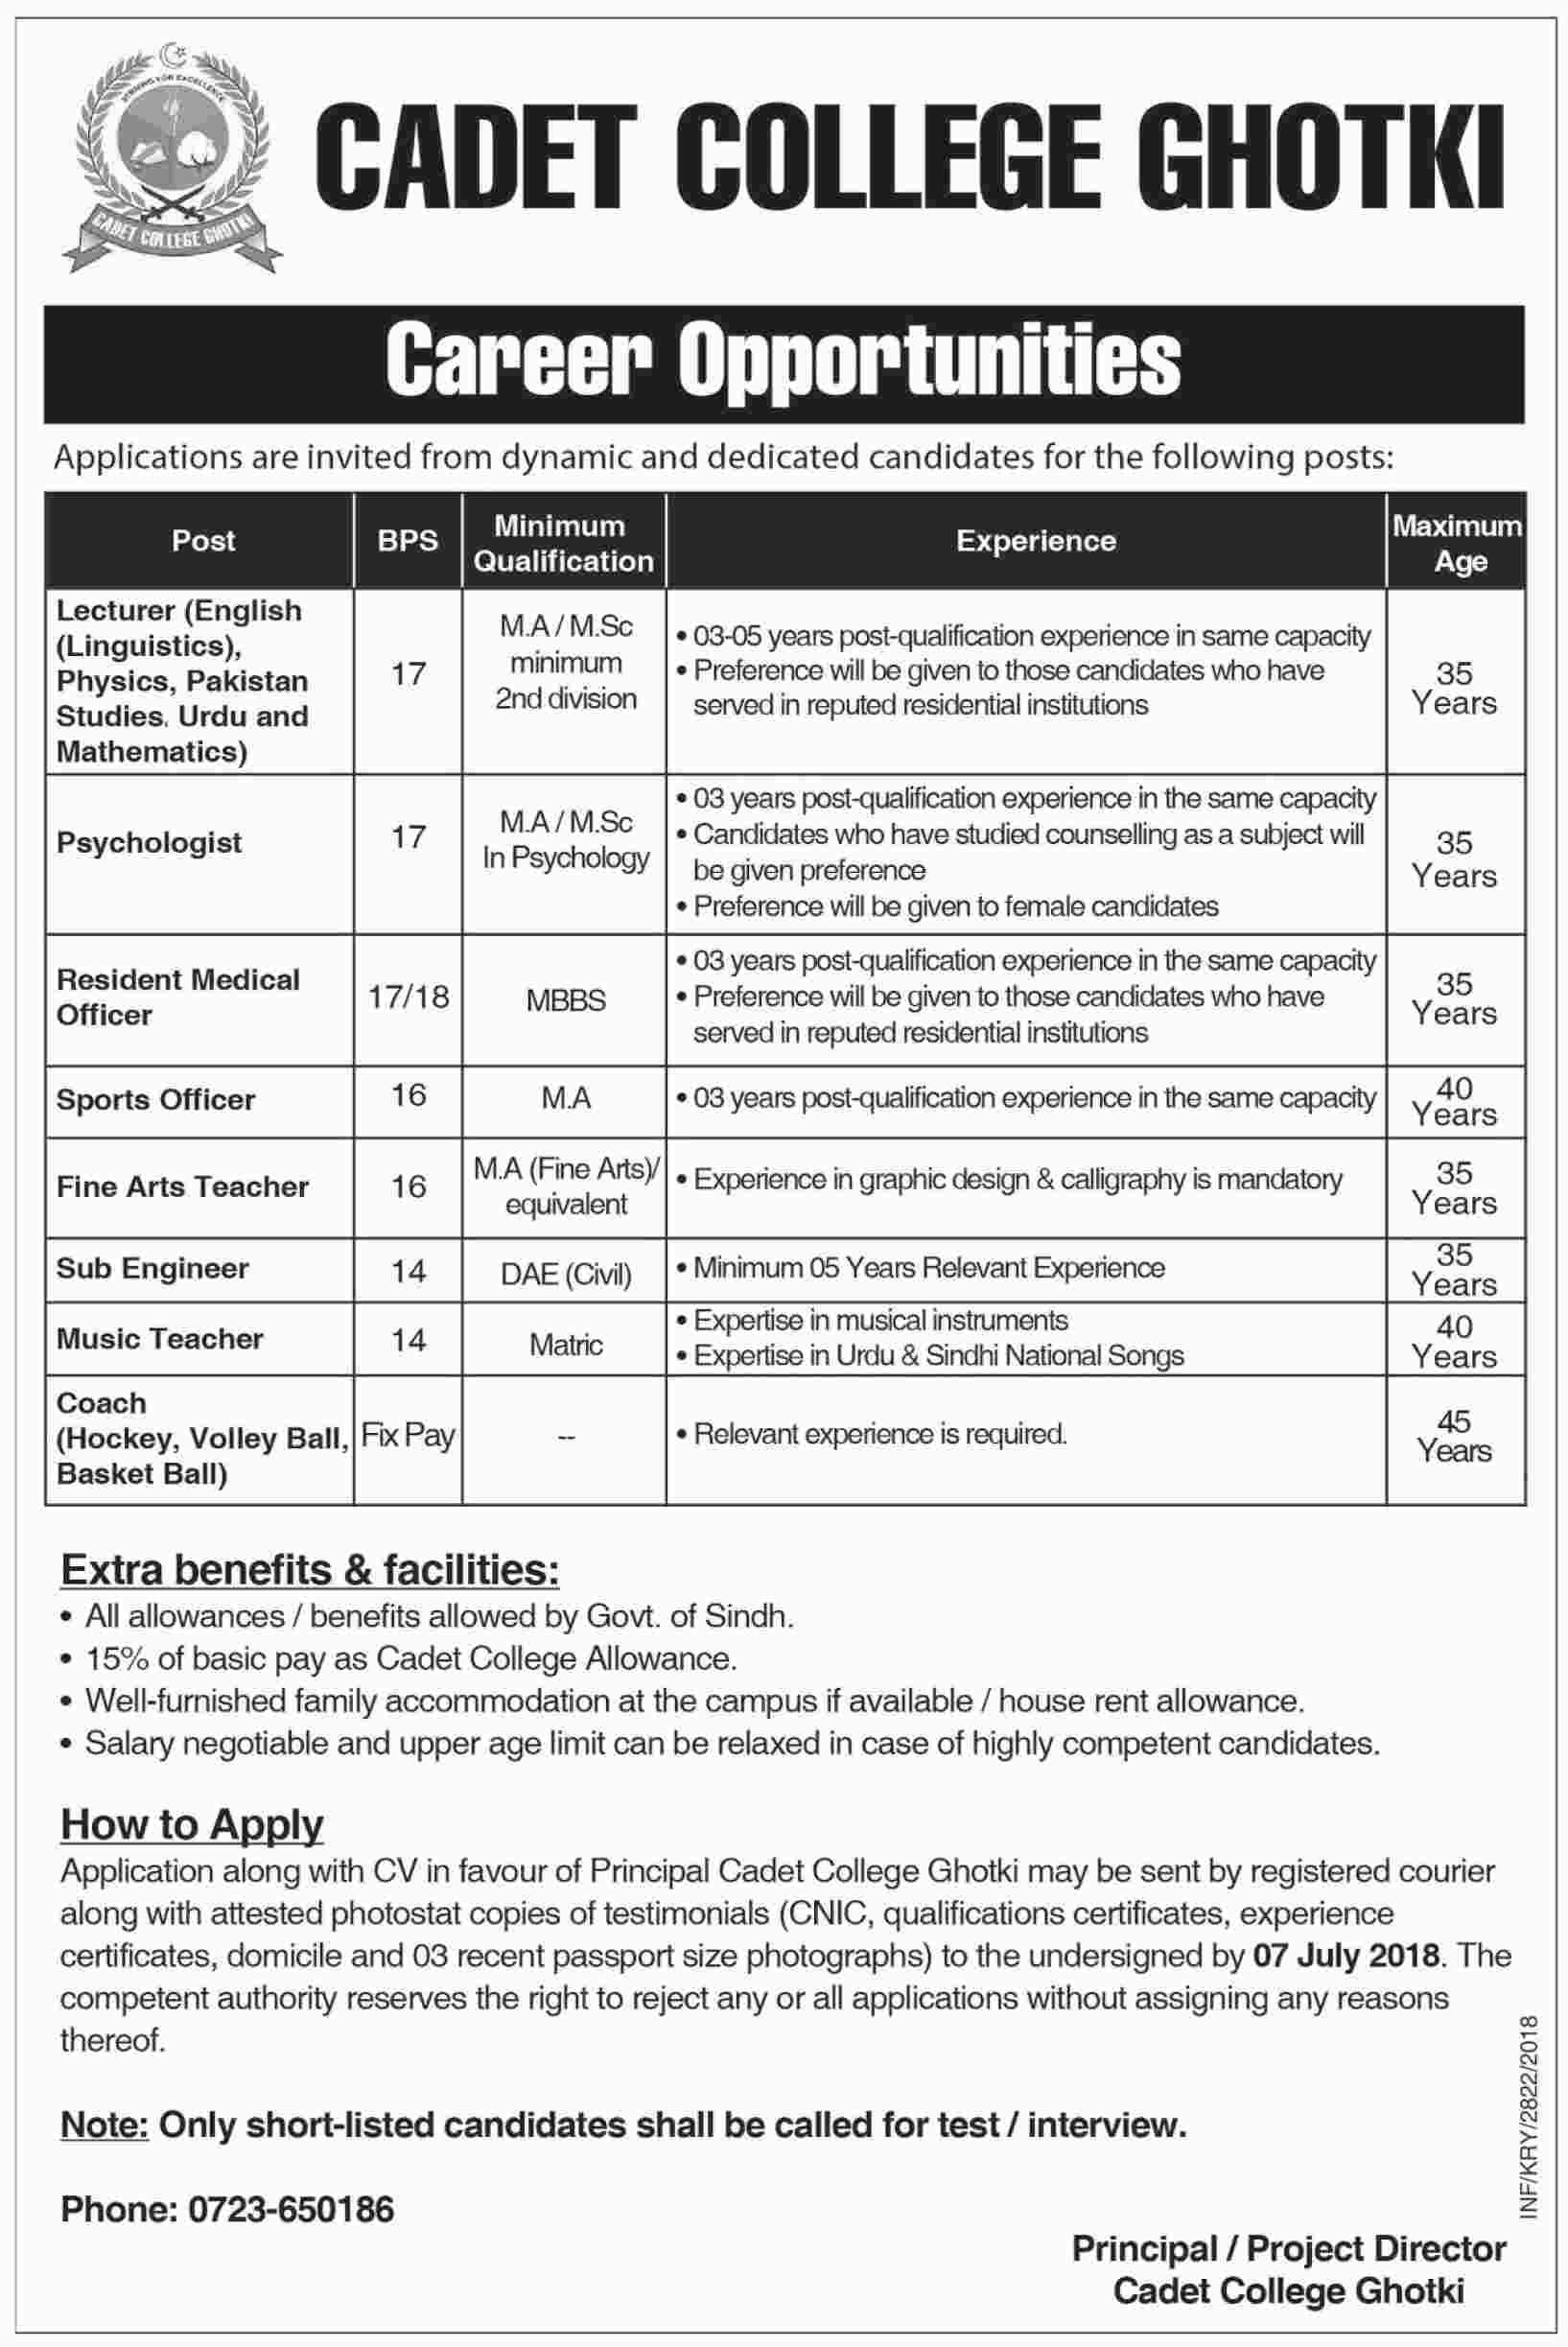 Jobs in Cadet College Ghotki 24 June 2018